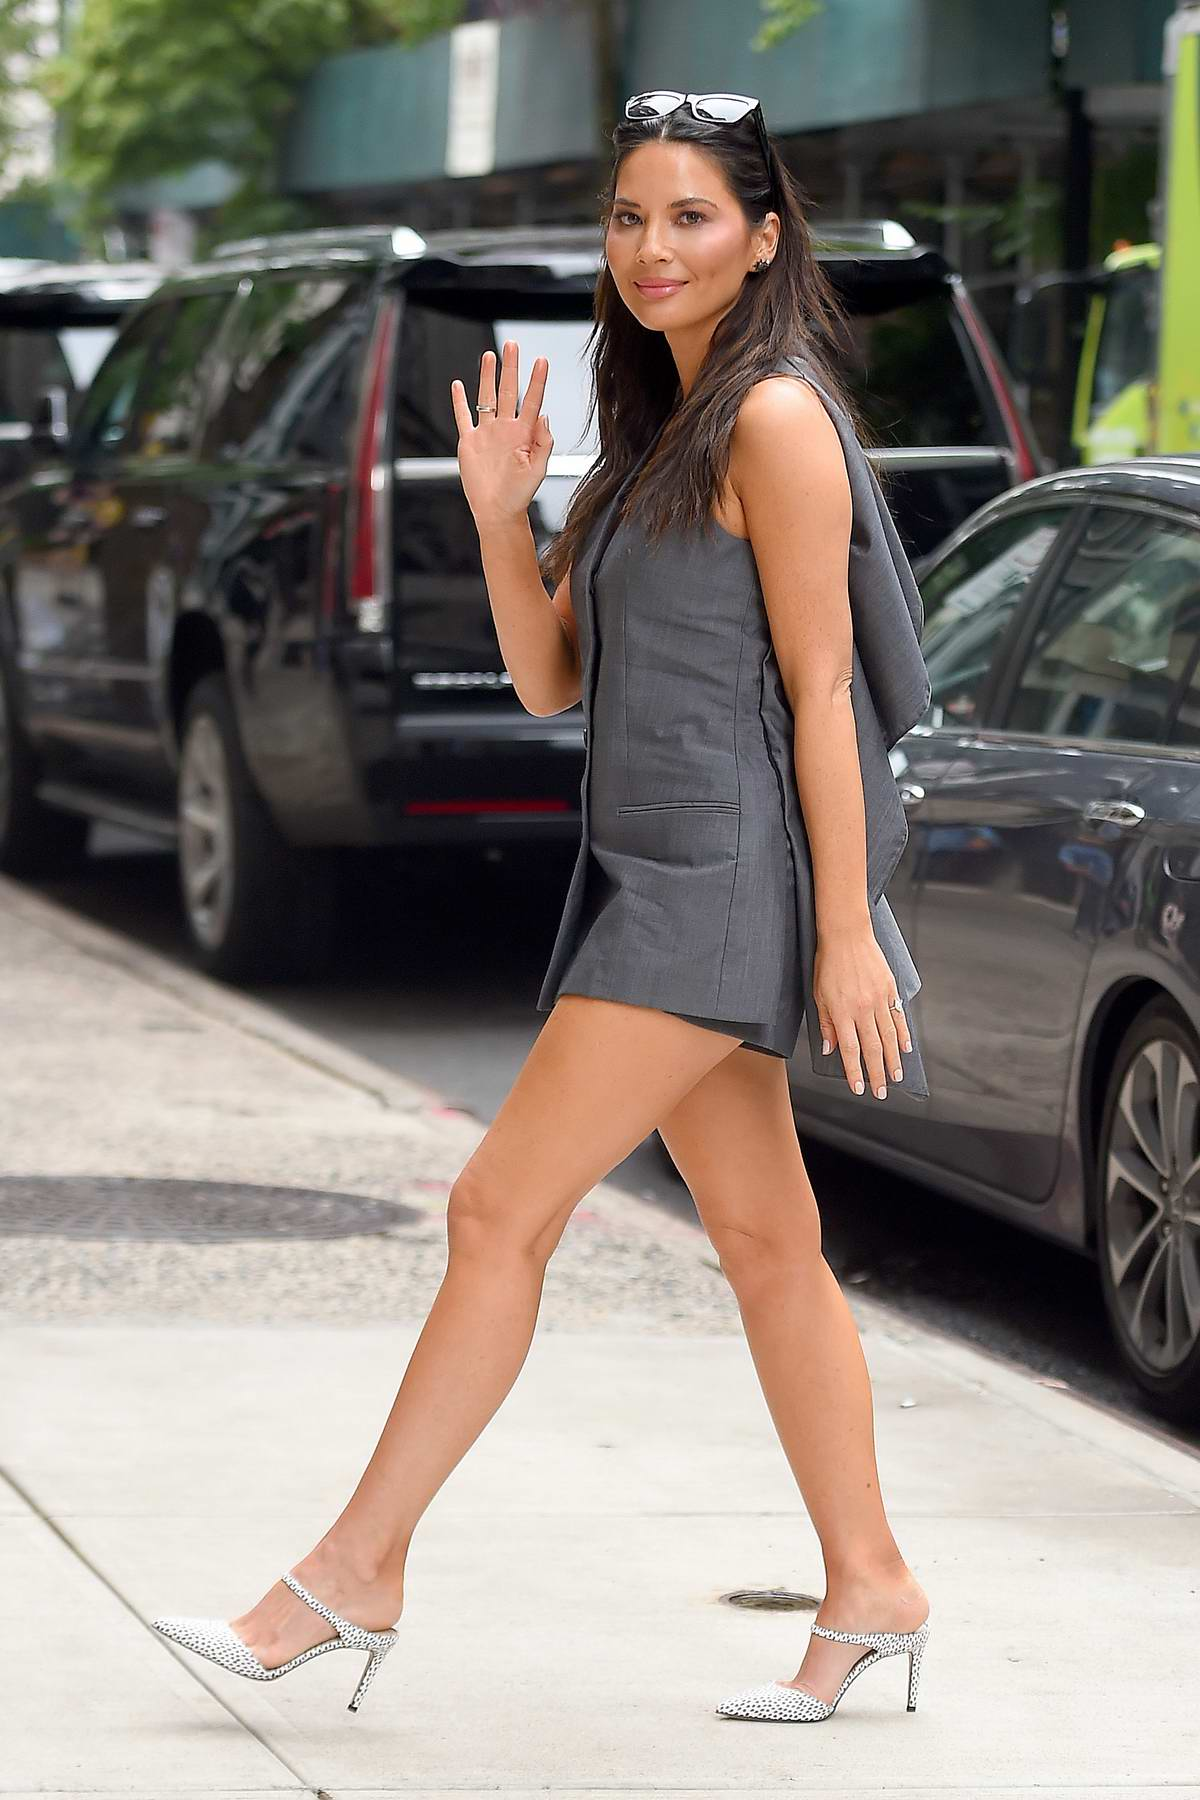 Olivia Munn looks stunning in a short grey outfit as she heads out in New York City